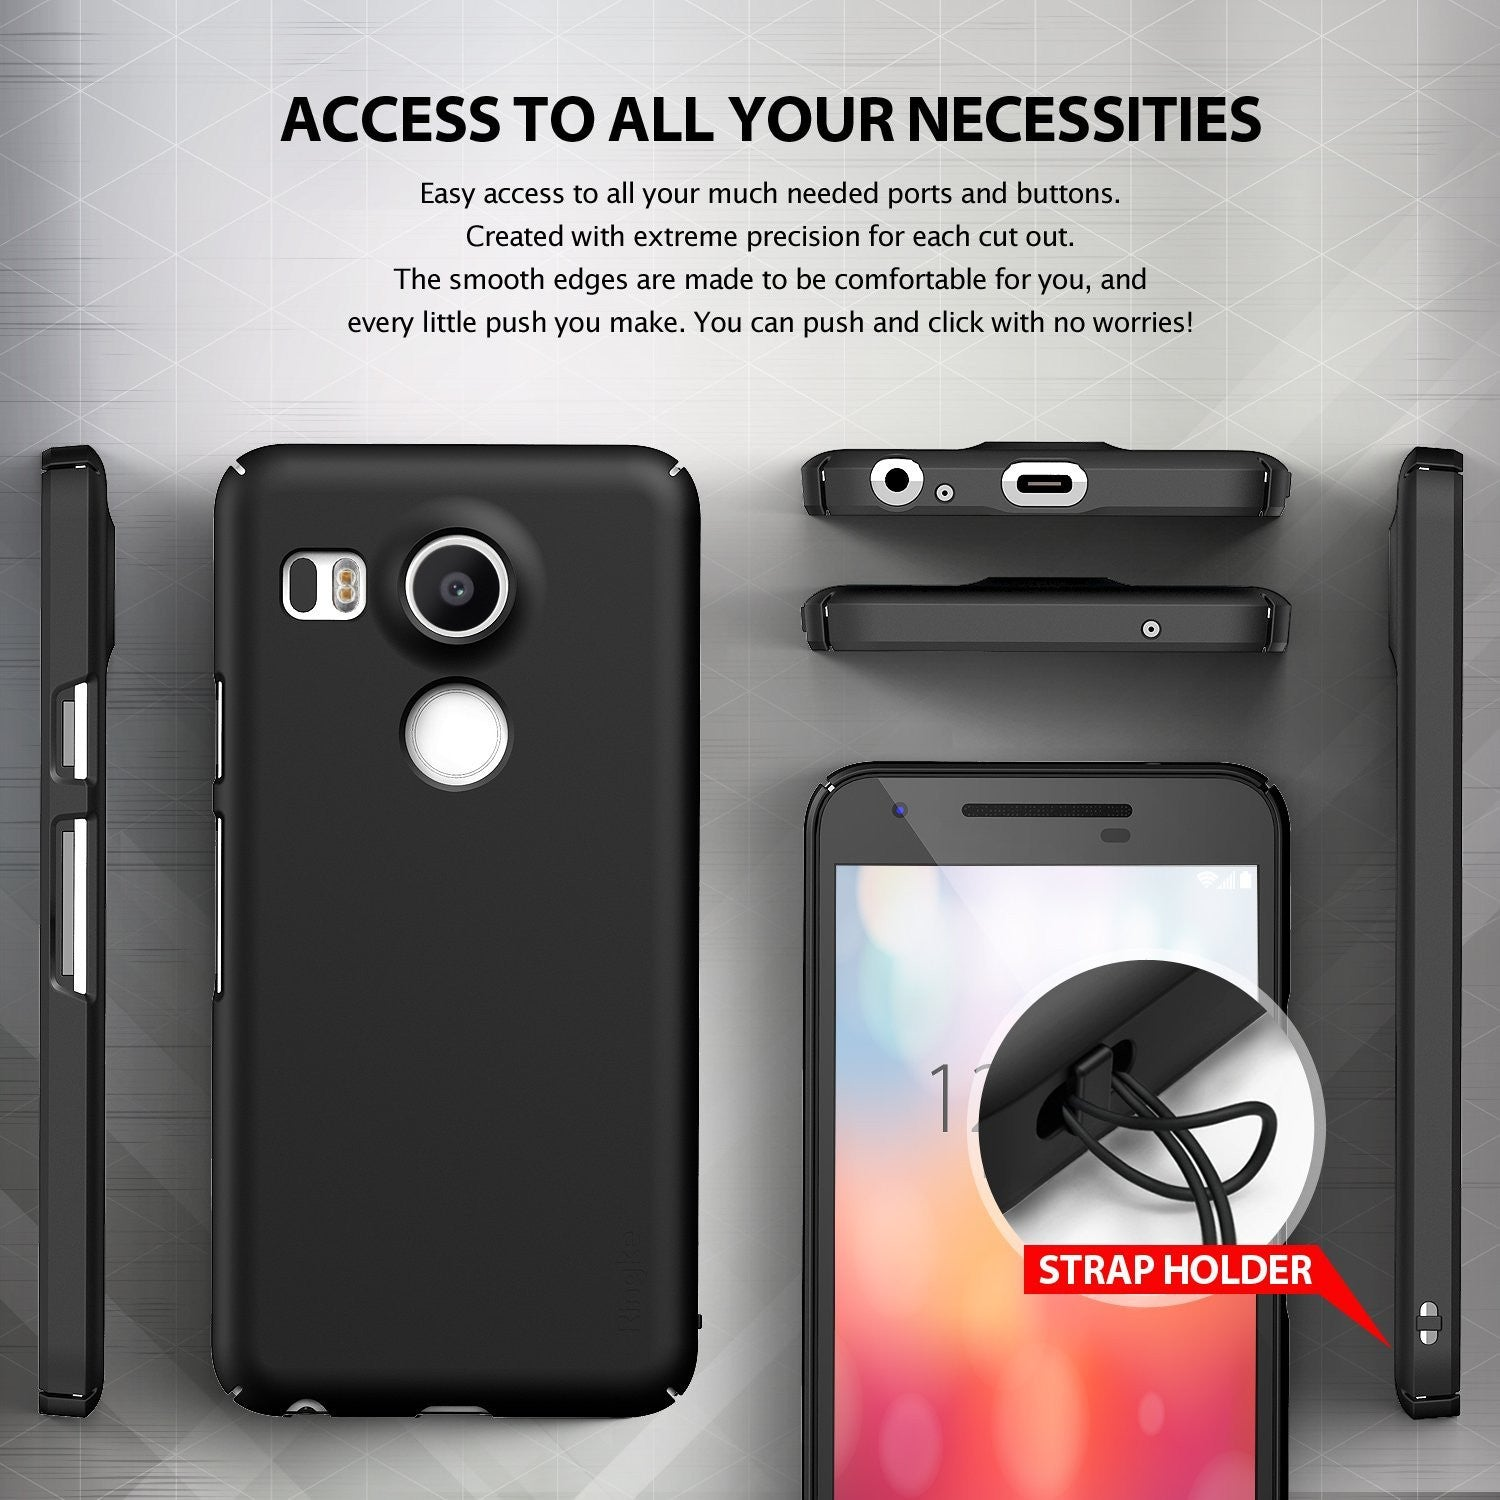 ringke slim thin lightweight hard pc back case cover for google nexus 5x main access to all ports